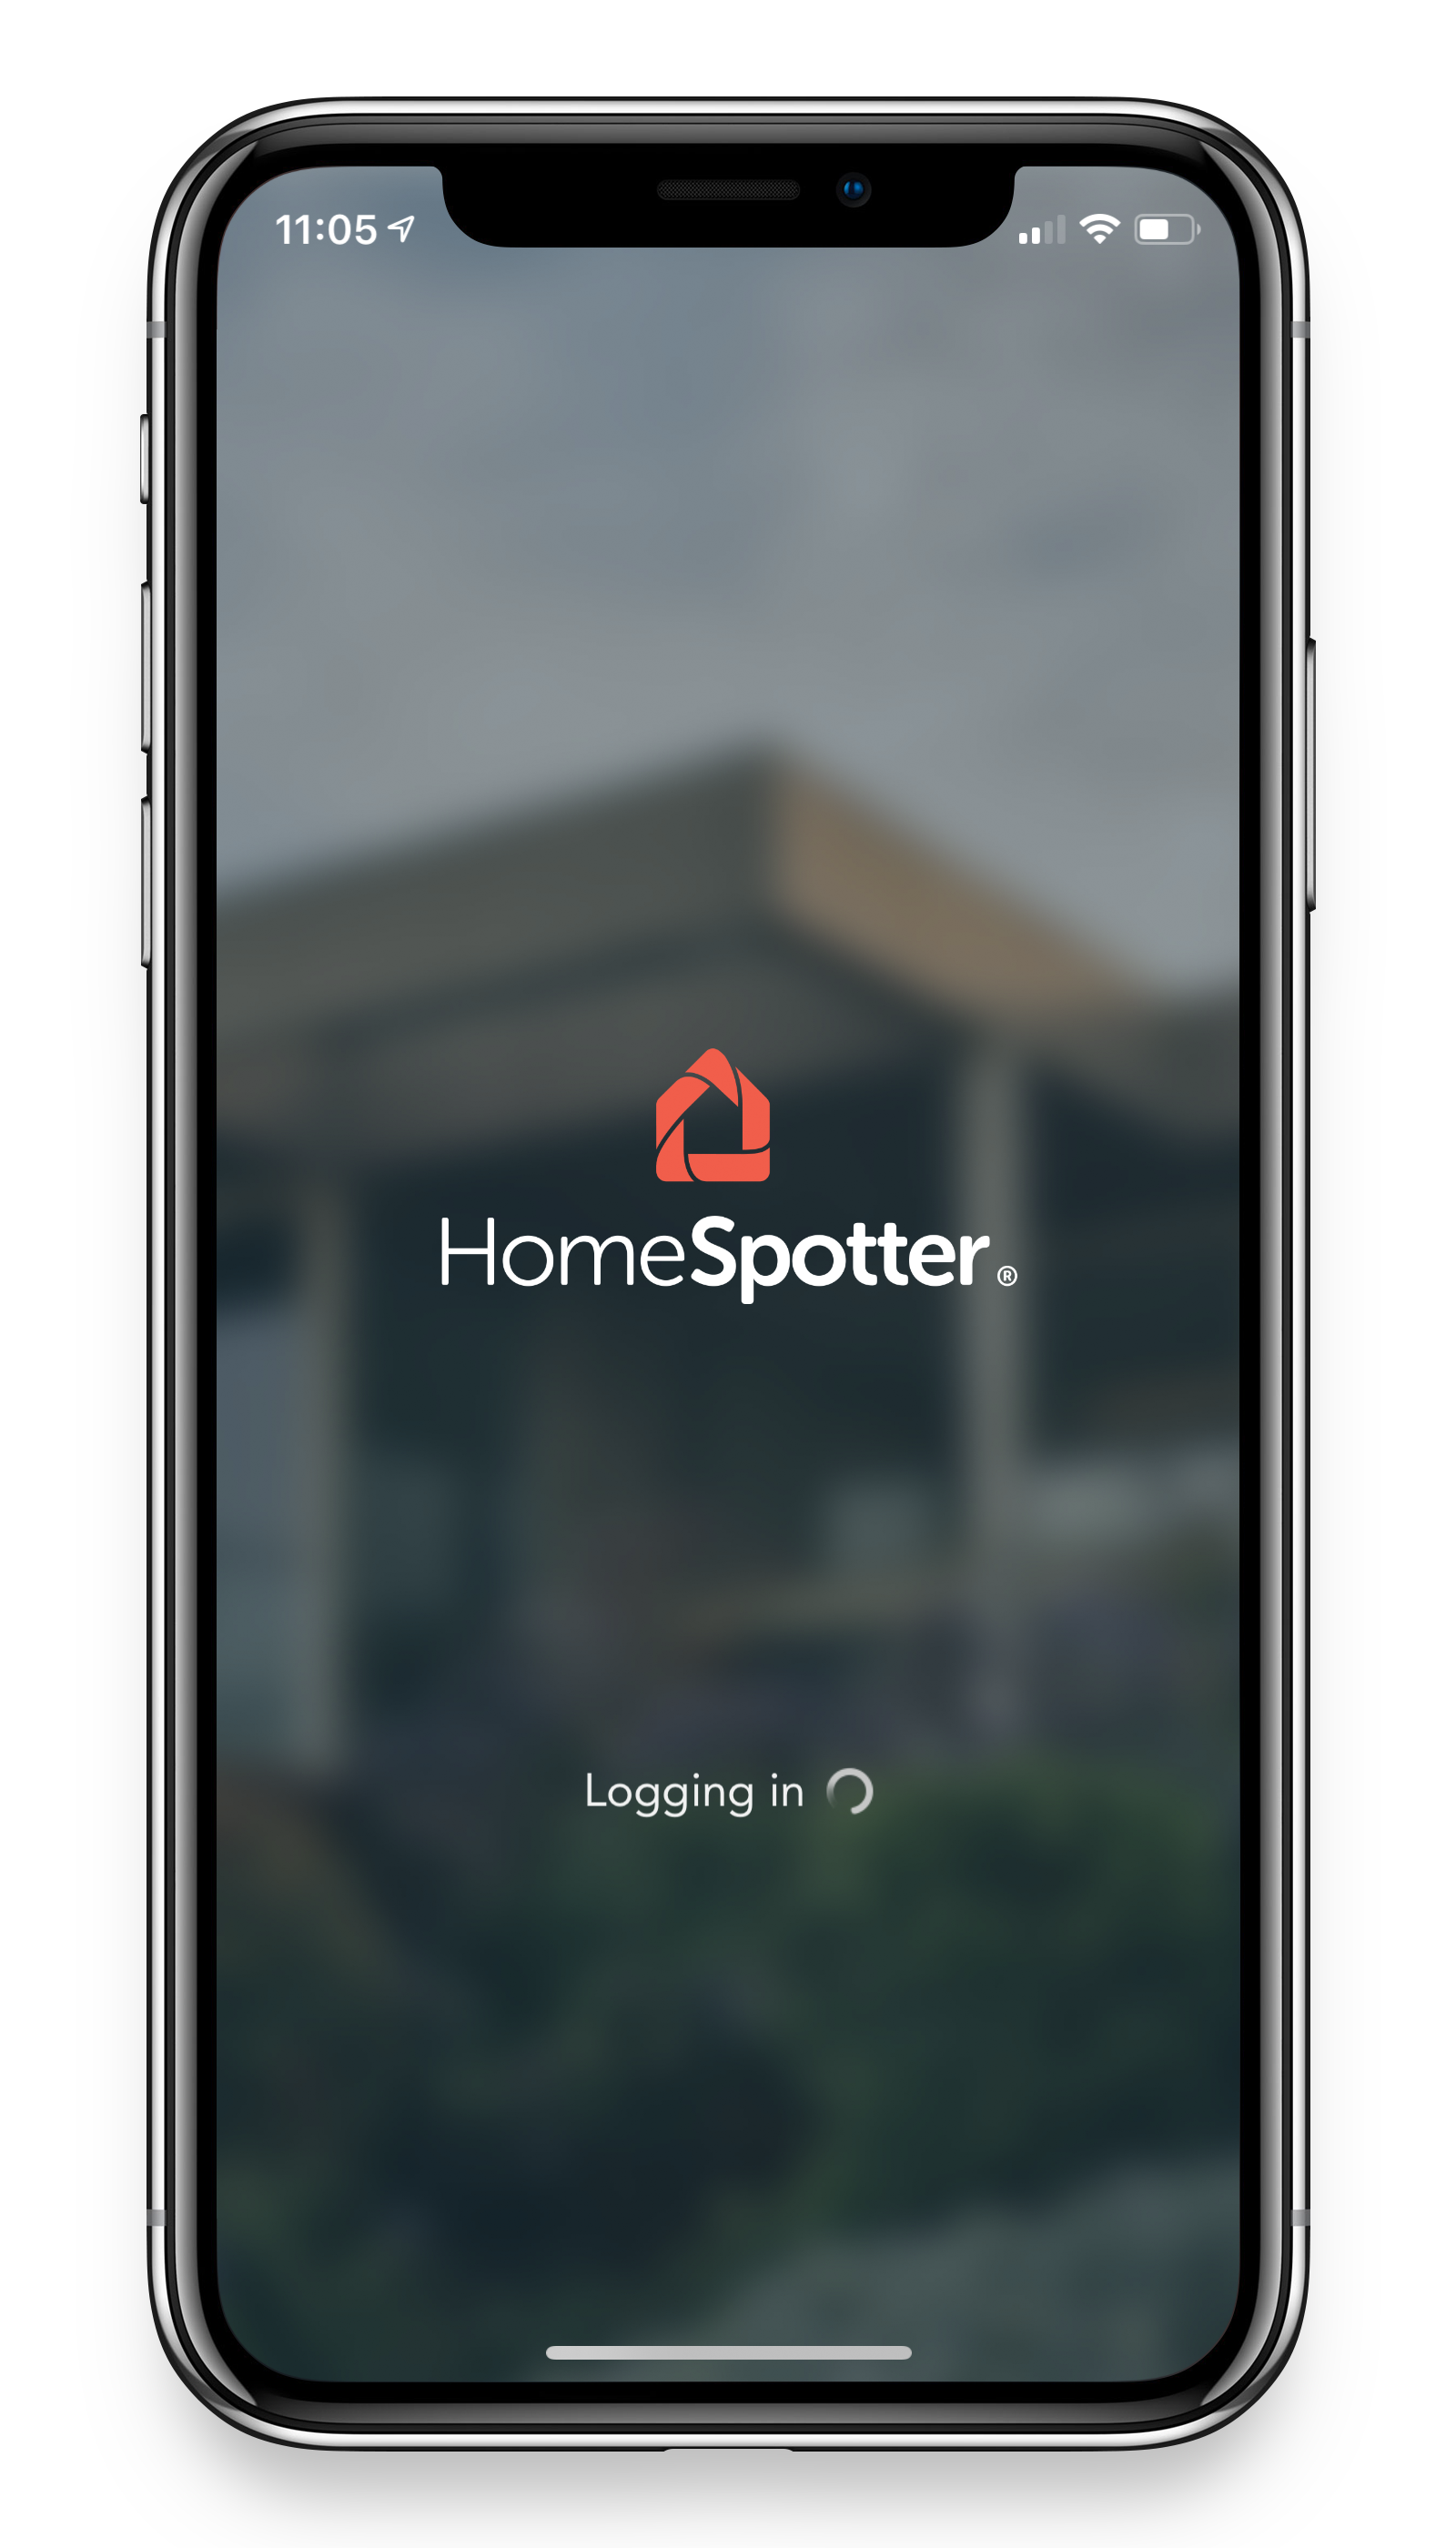 The loading screen of the Homespotter application, shown on an iPhone.